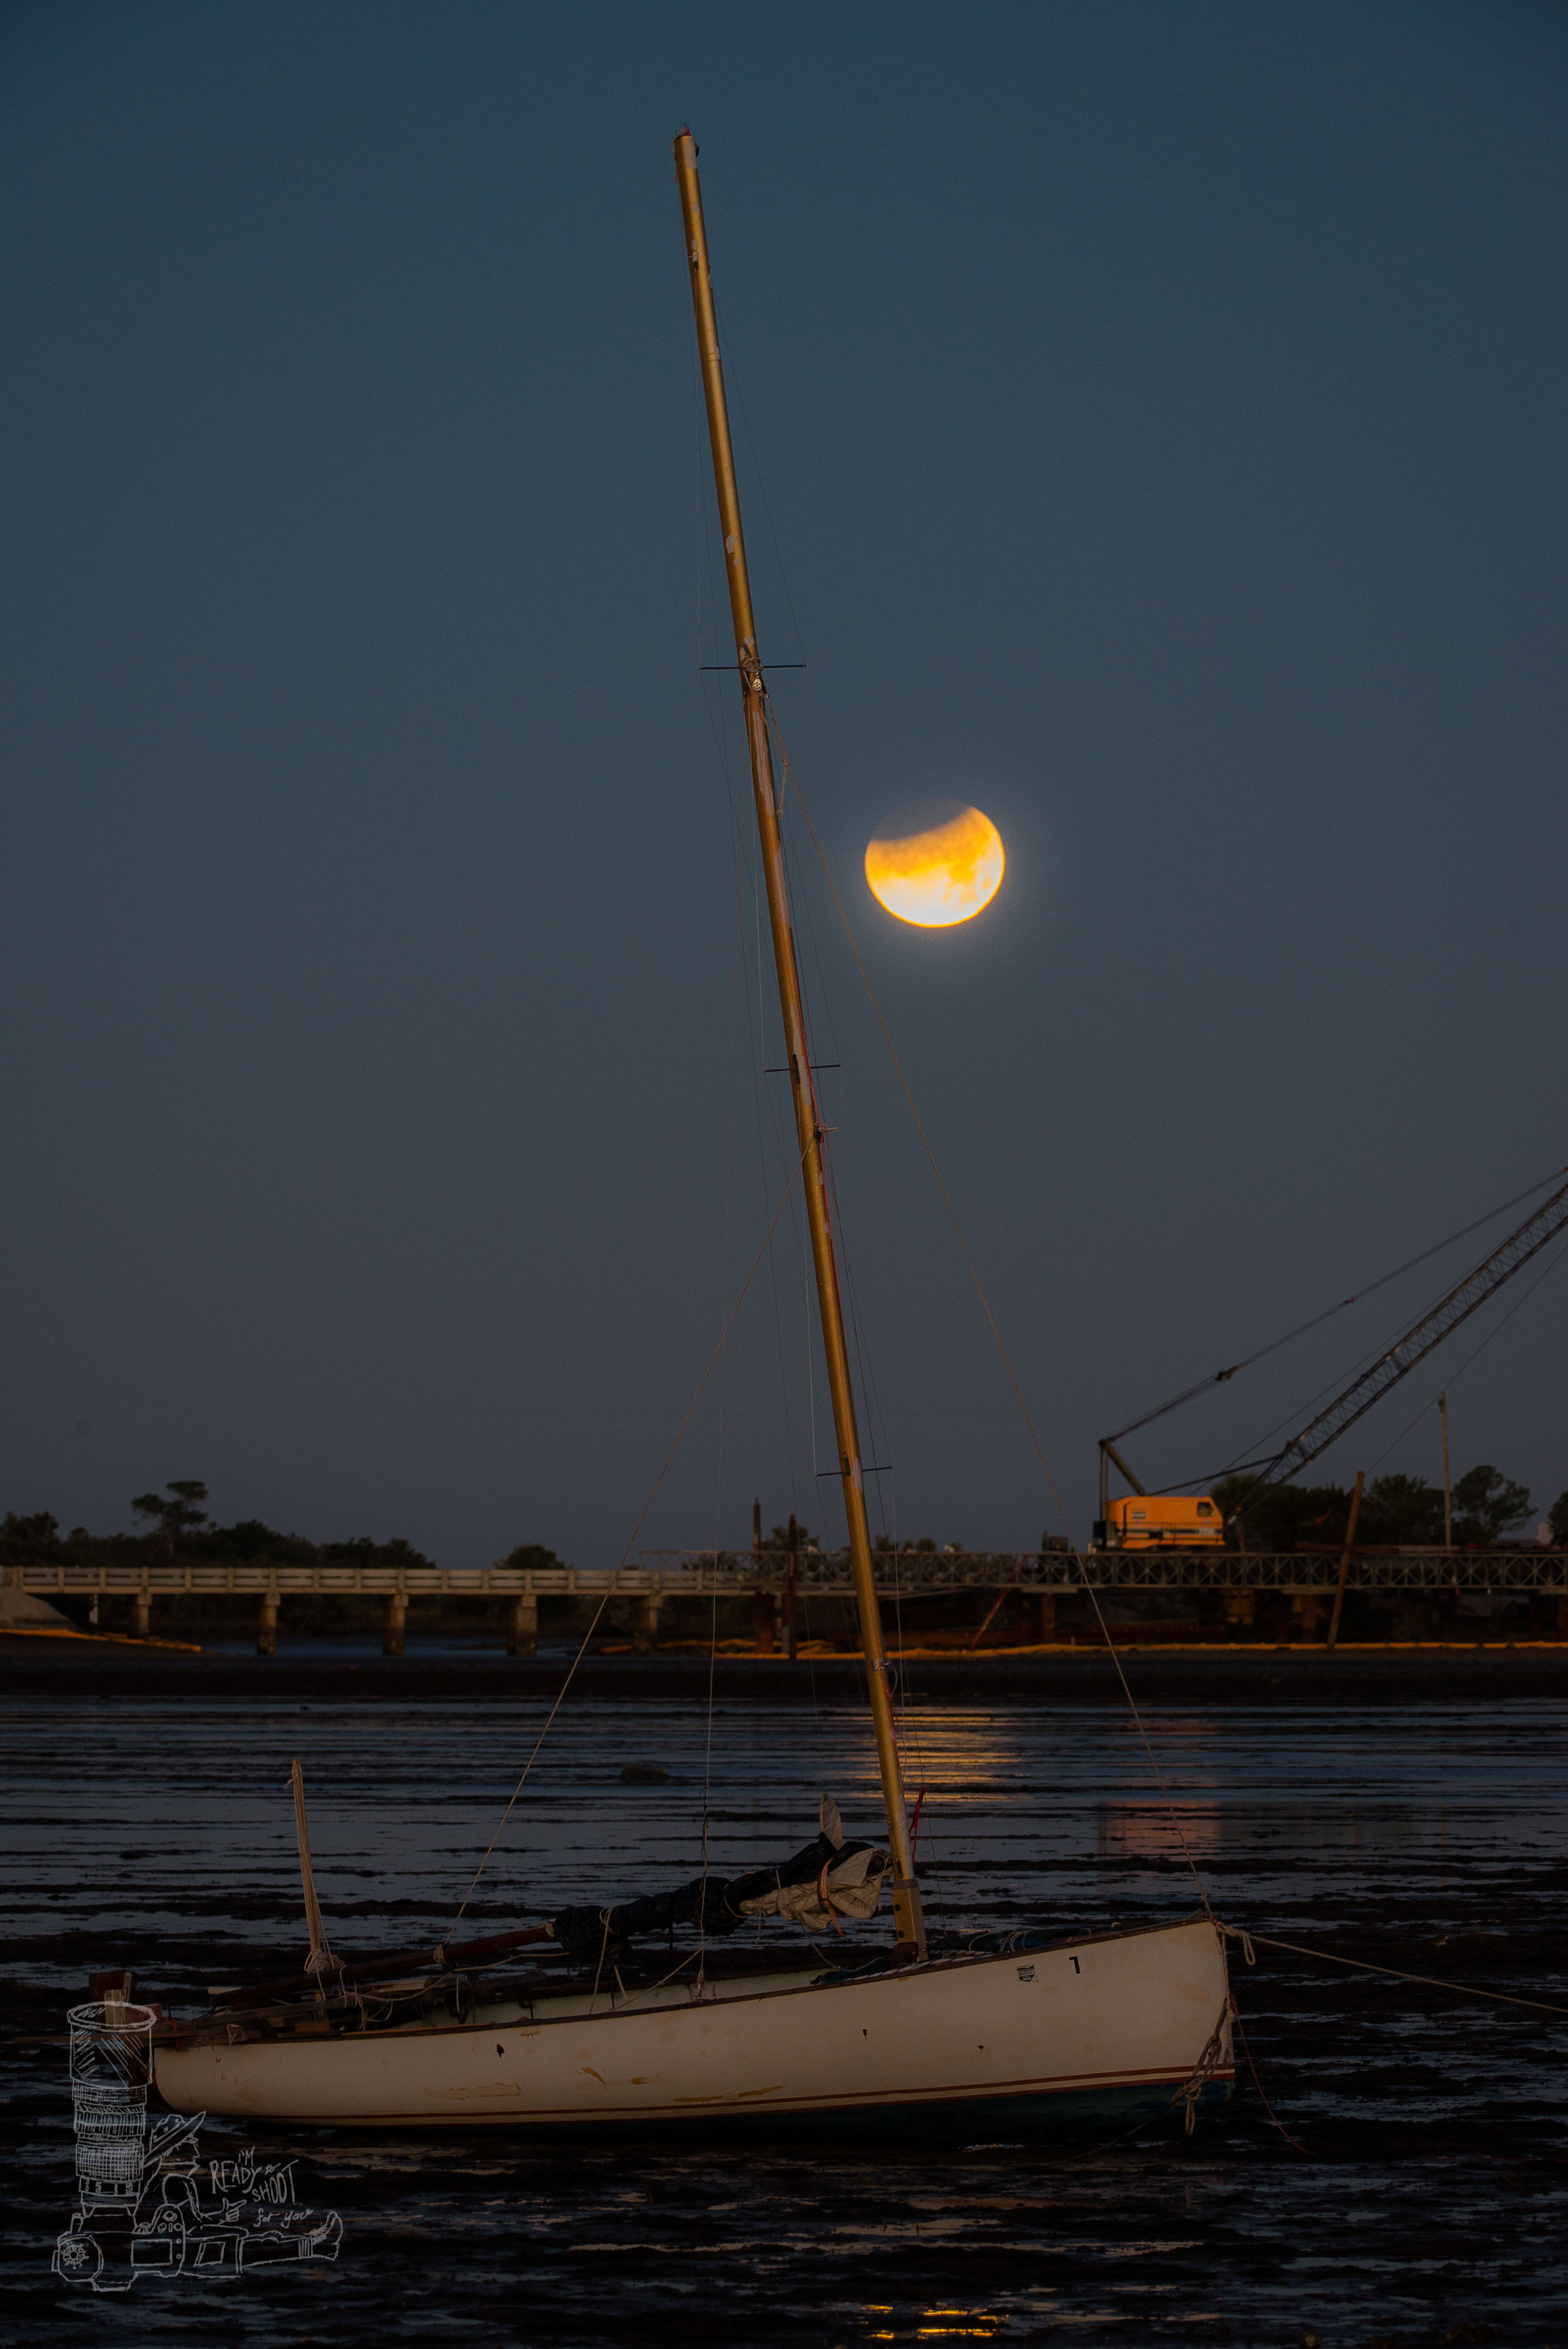 The Eclipse & the Sailboat